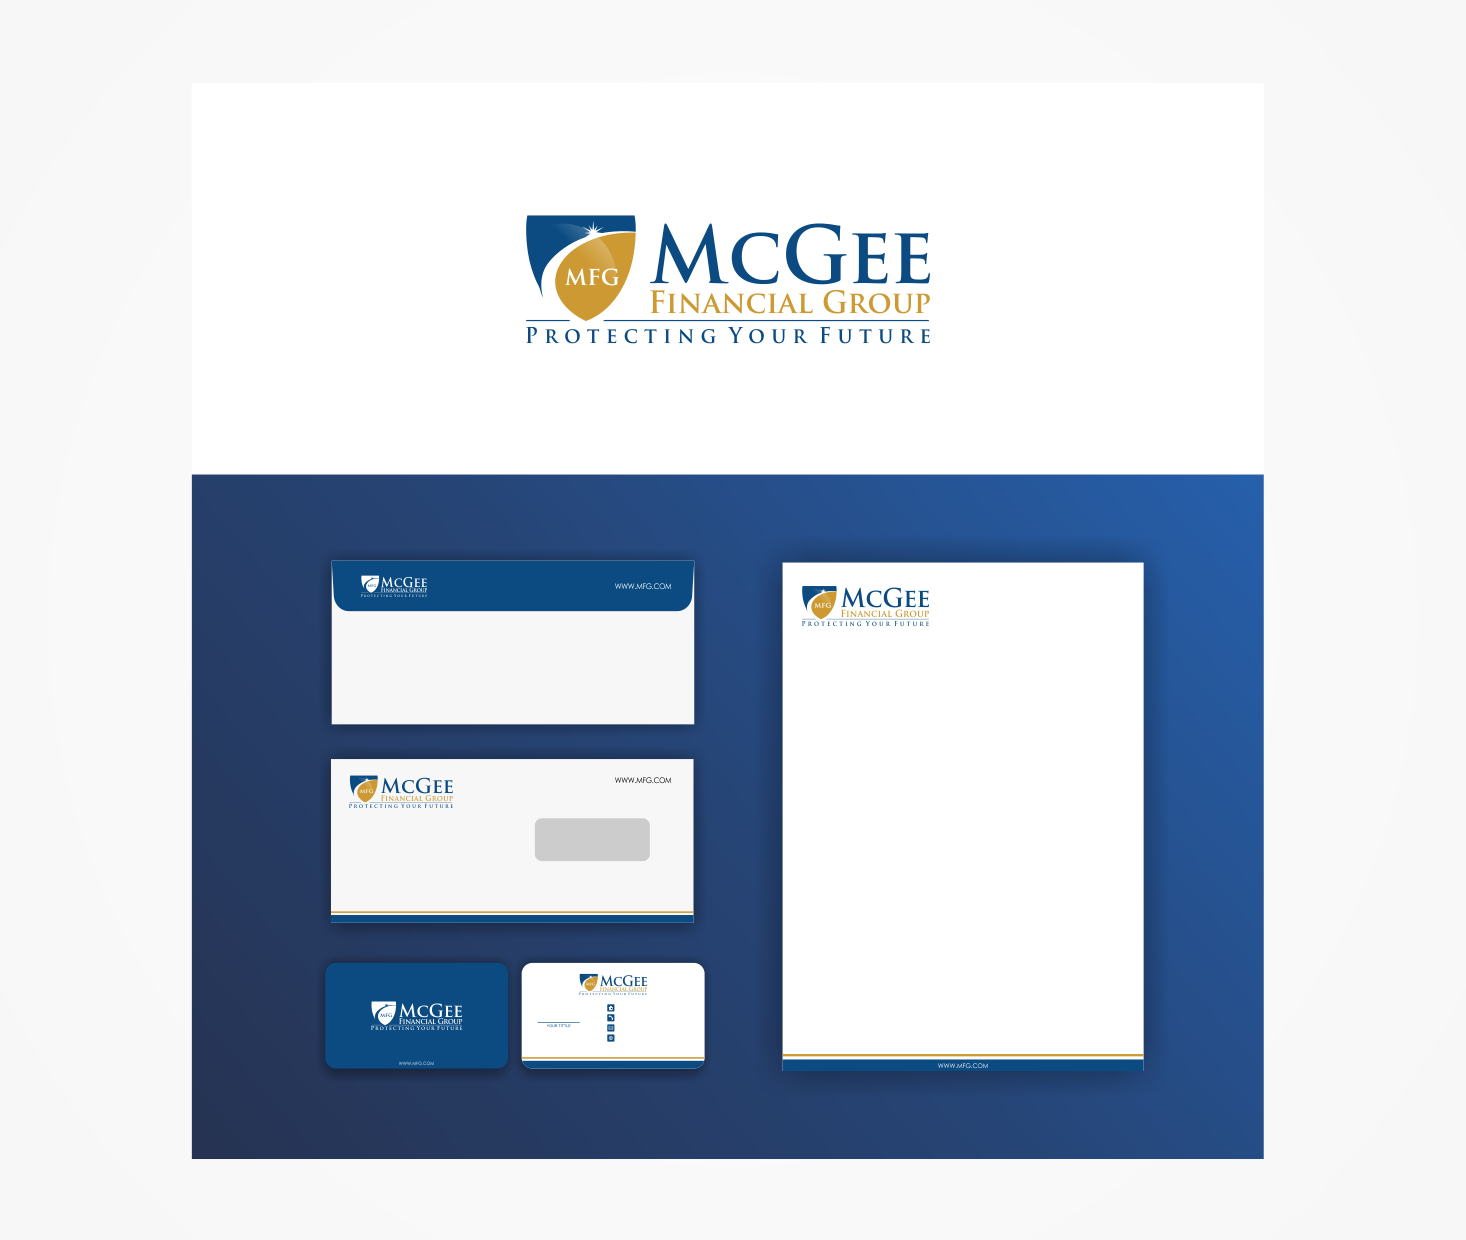 Just a squirrel trying to find a nut...Create a professional logo for McGee Financial